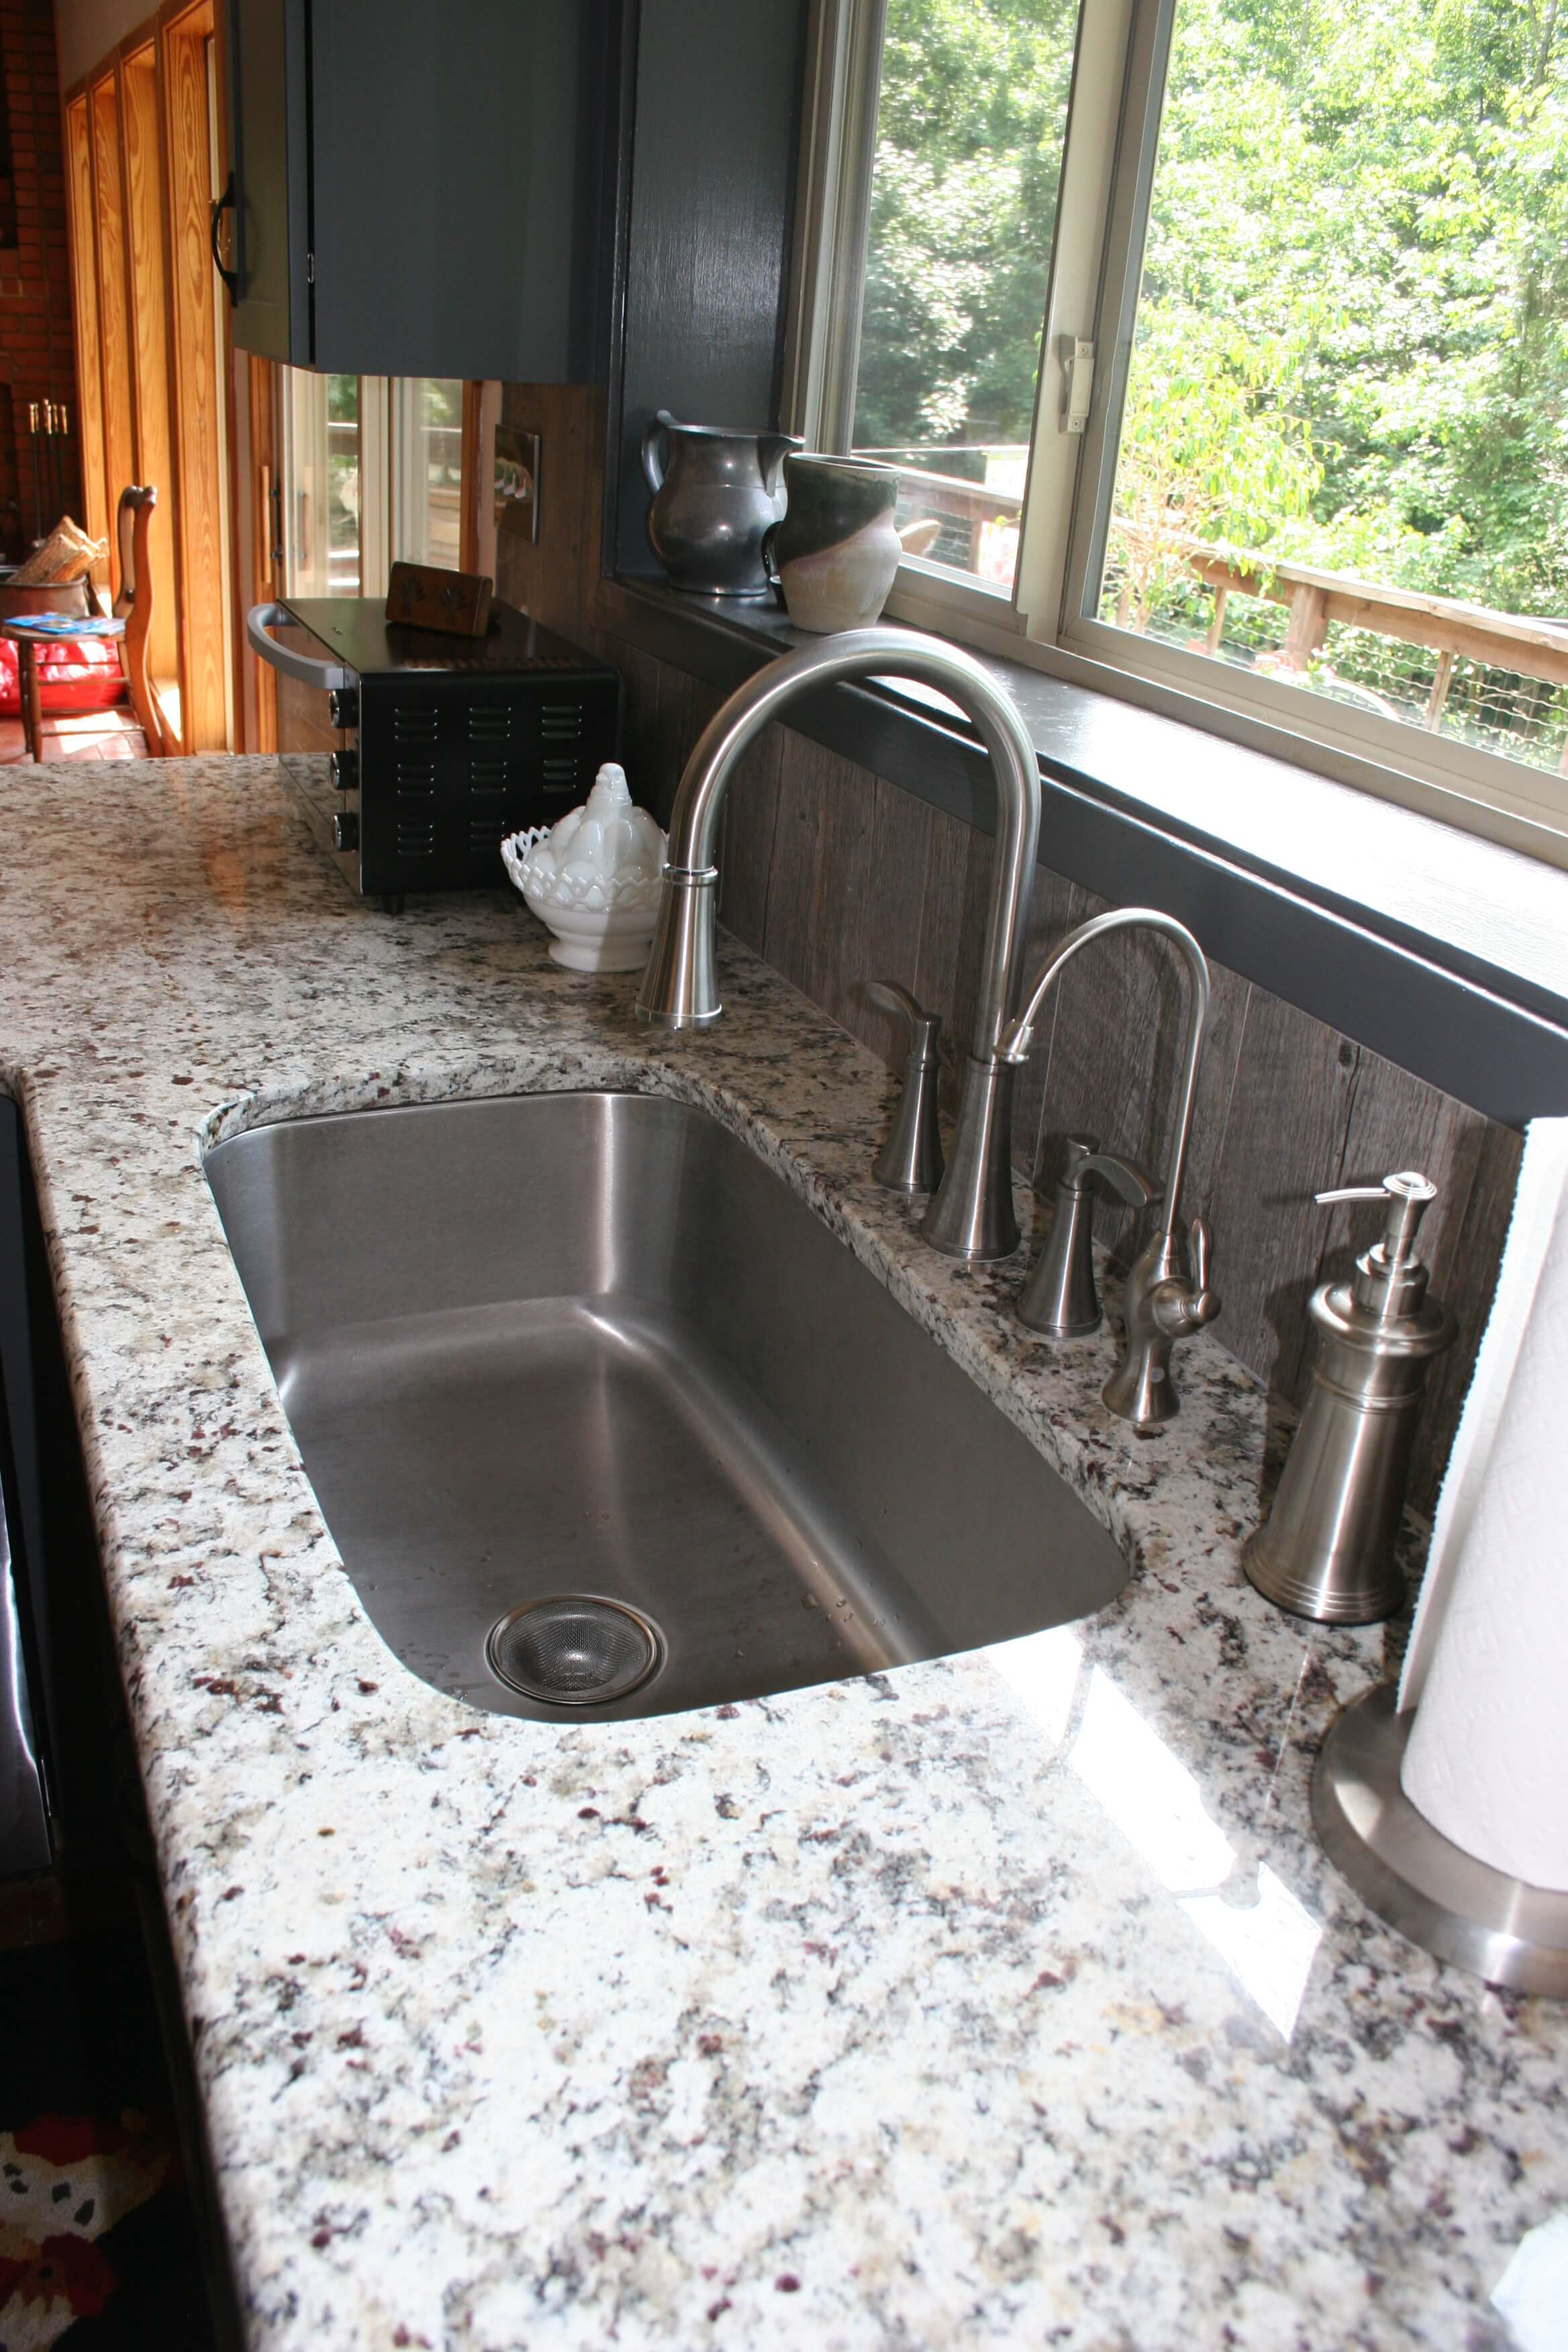 Prefab Granite Countertops Mesa Az : Danbury Style with Oyster Glaze Kitchen - Prince & Sons, Inc.